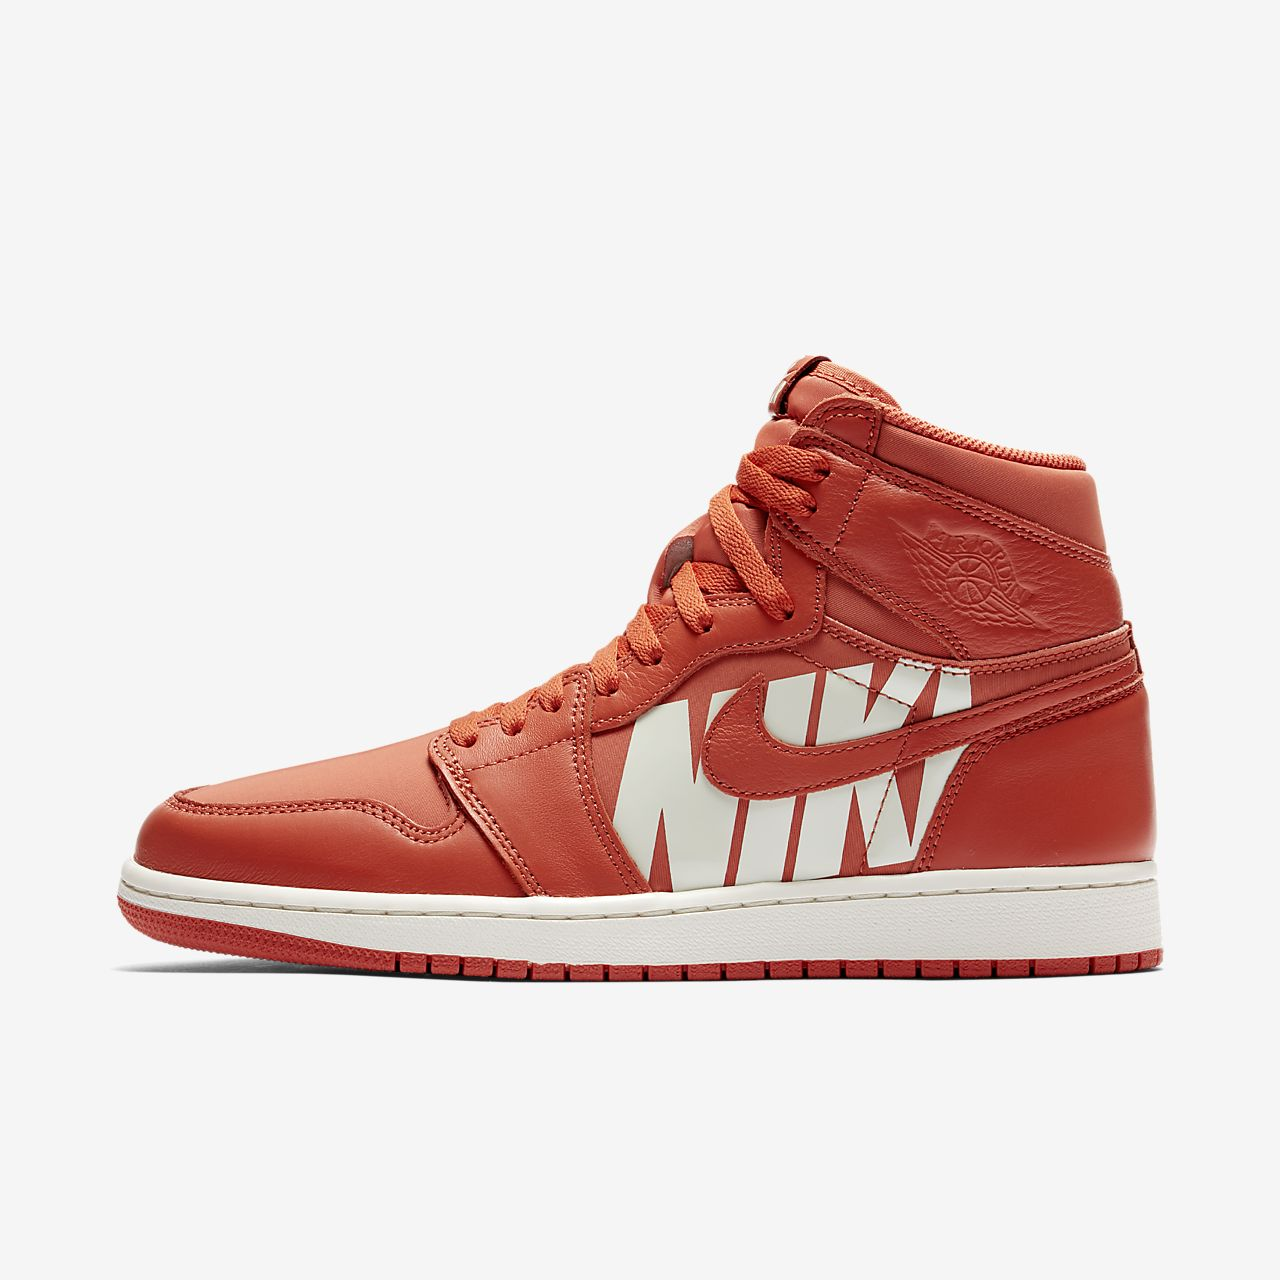 8c2471c127c Air Jordan 1 Retro High OG Shoe. Nike.com NZ